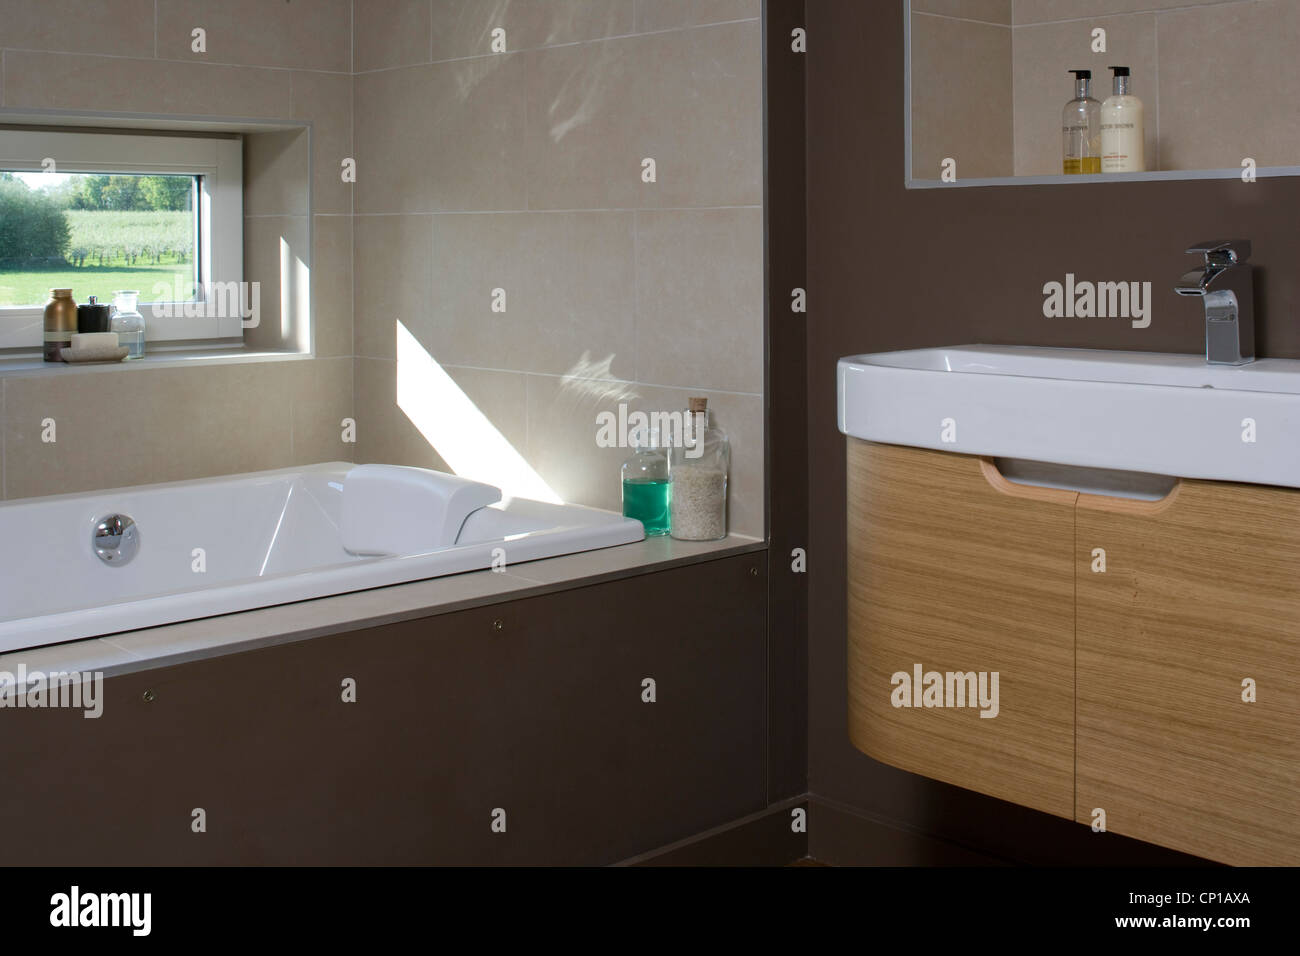 Dark brown bathroom with recessed bathtub in carbon neutral home in Crossway, Kent, England. - Stock Image